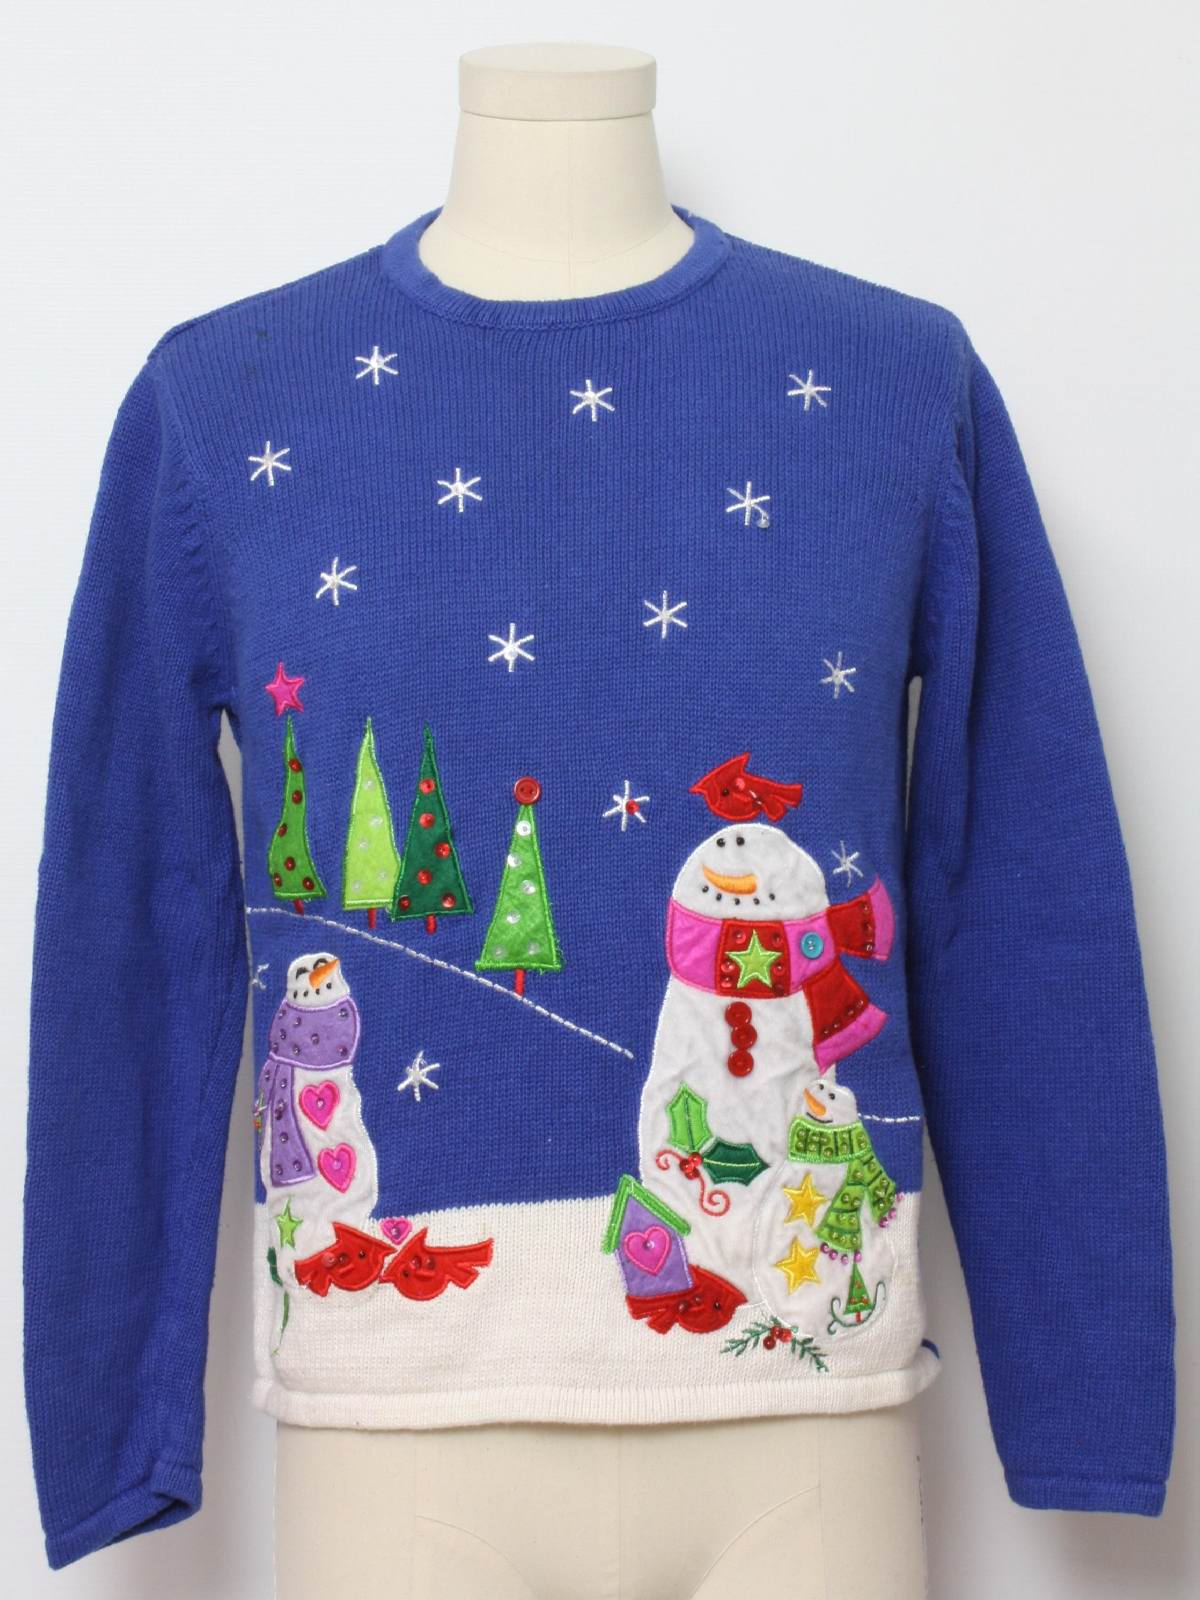 Womens Ugly Christmas Sweater: -Carly St Claire- Womens ...